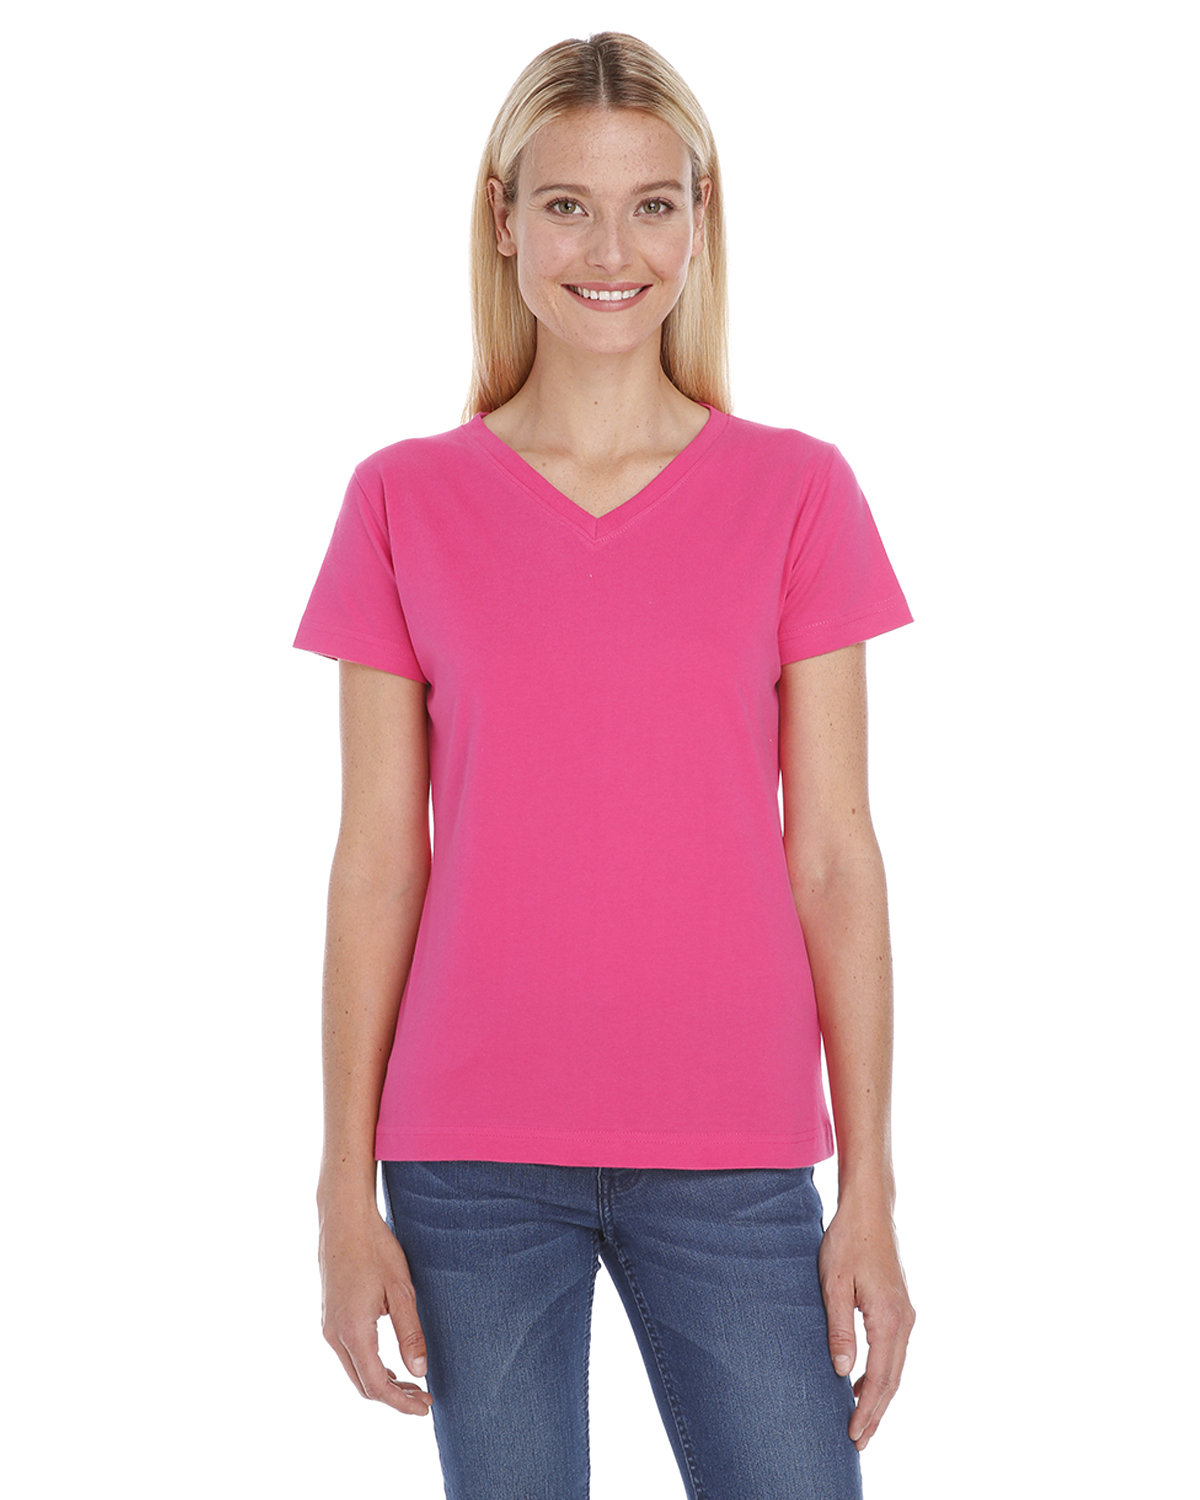 LAT Ladies' Premium Jersey V-Neck T-Shirt HOT PINK